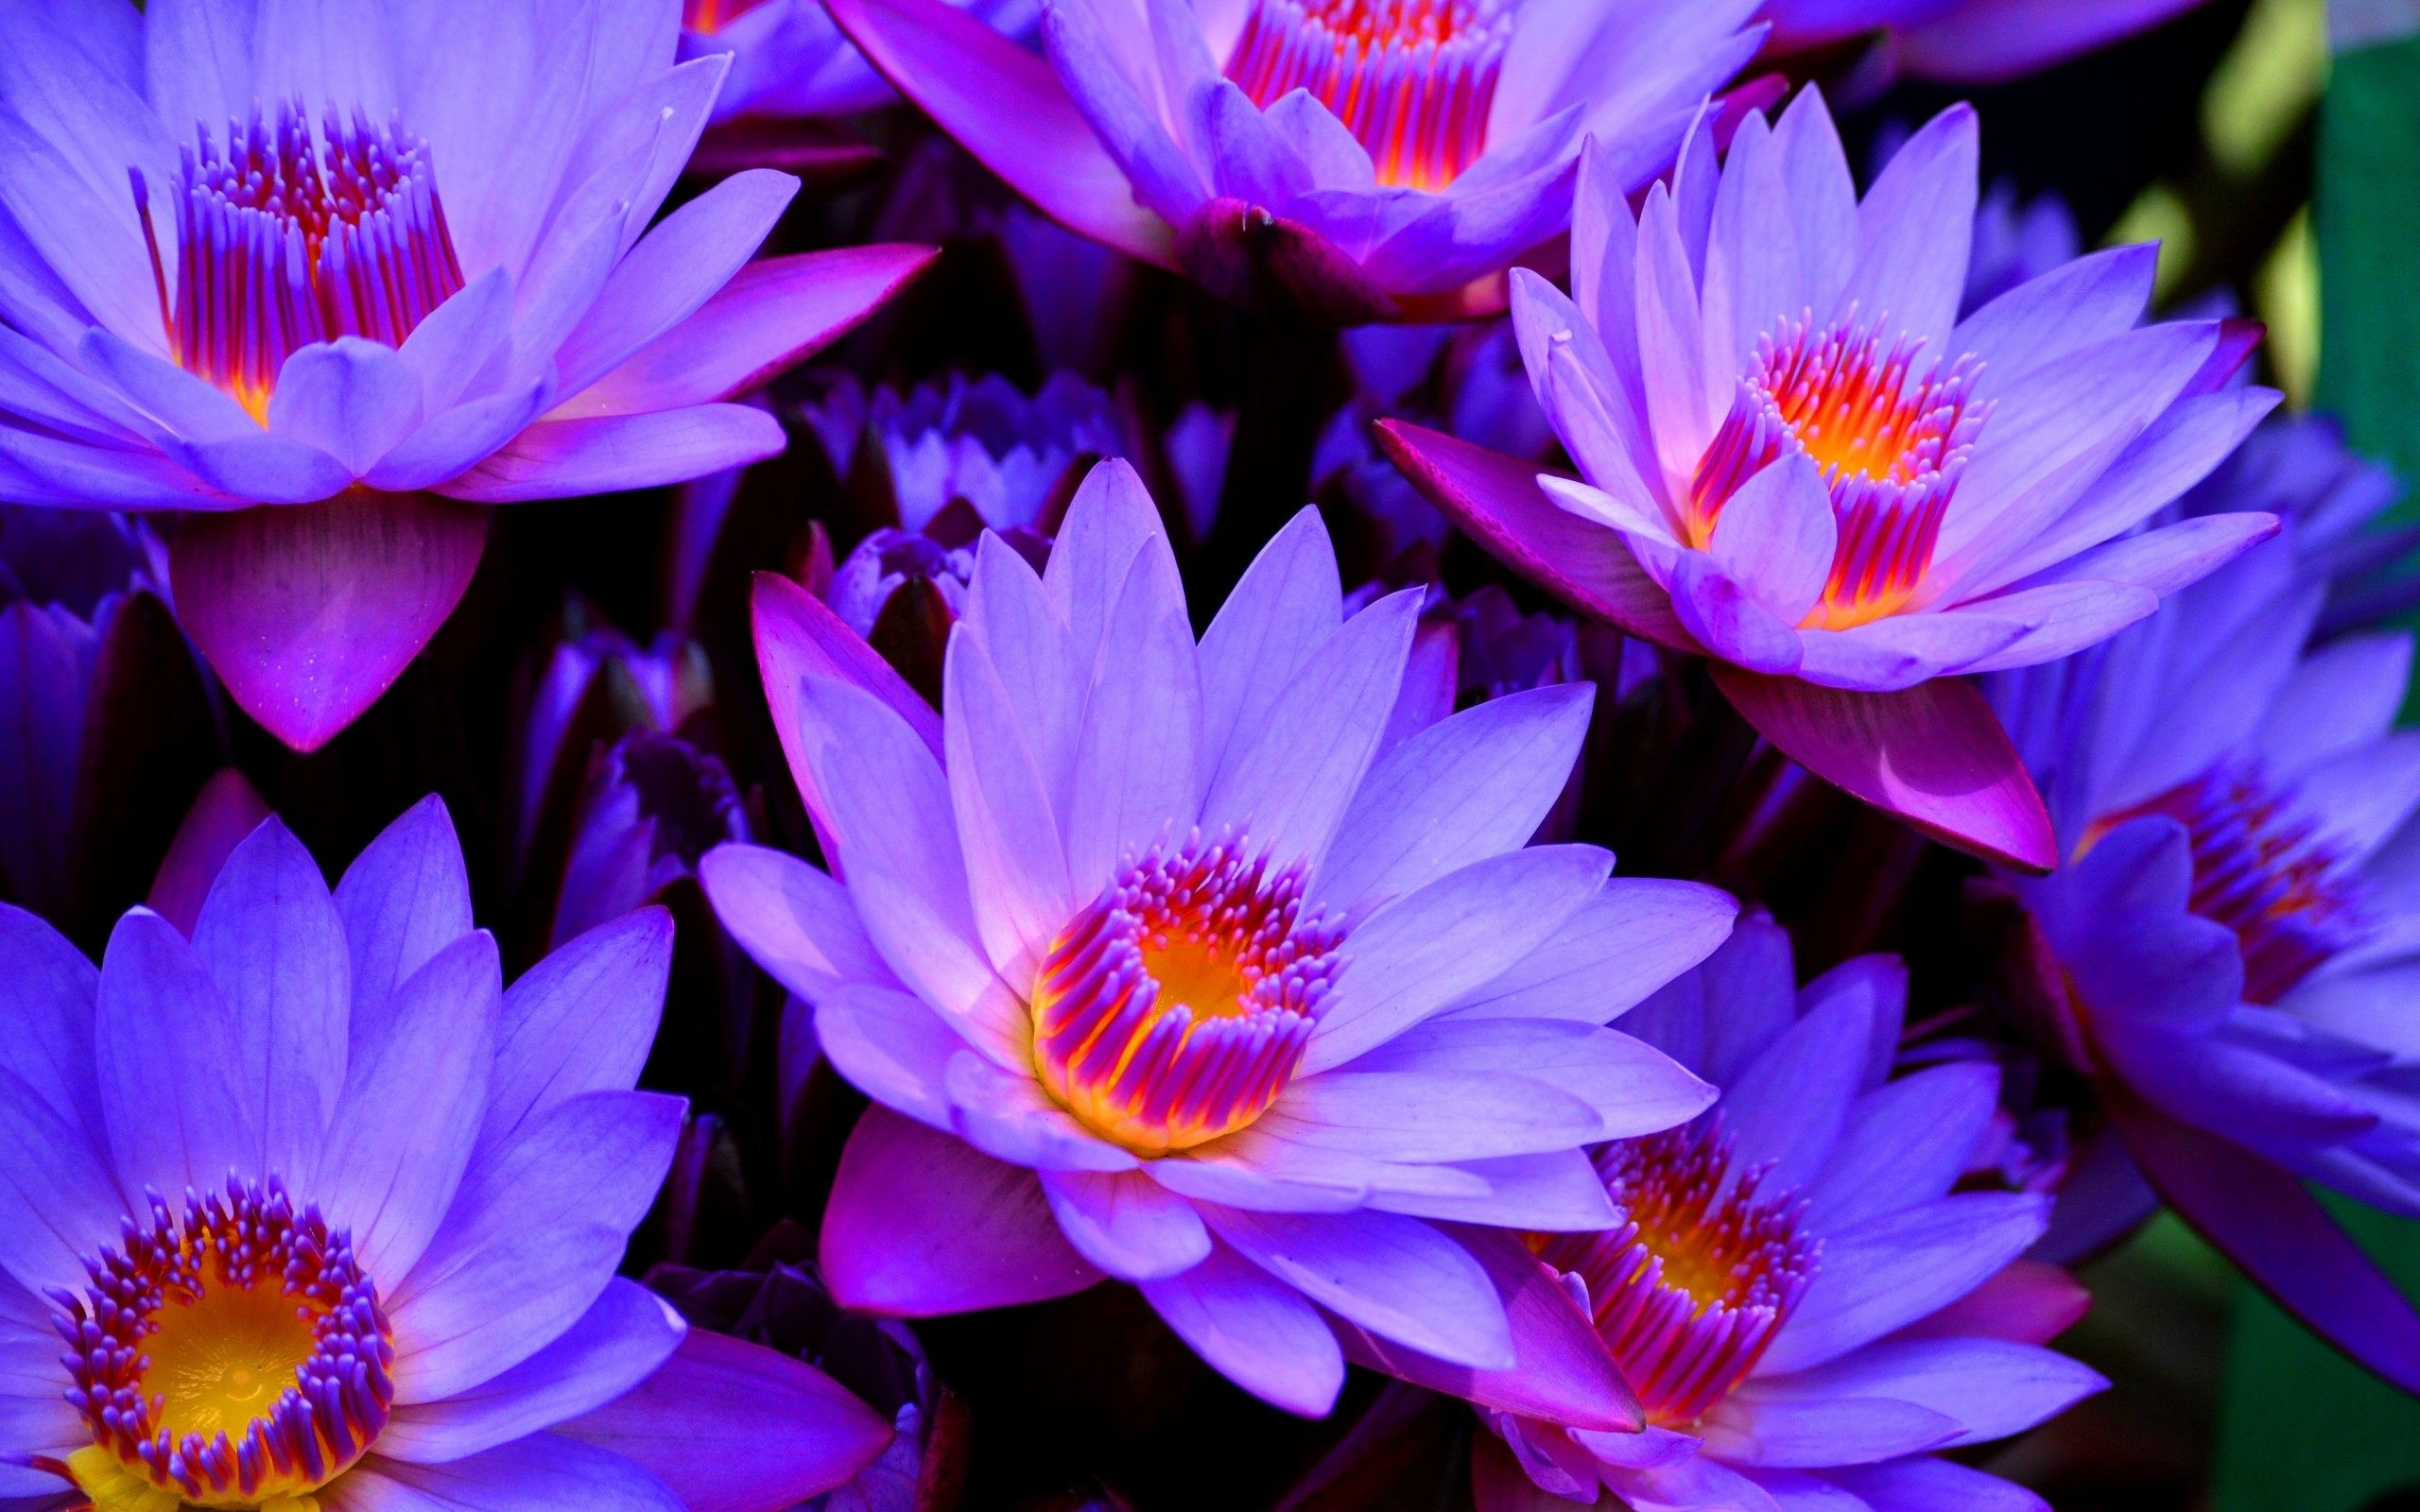 Res: 2560x1600, GAA648: Lotus Flower Background  px Download